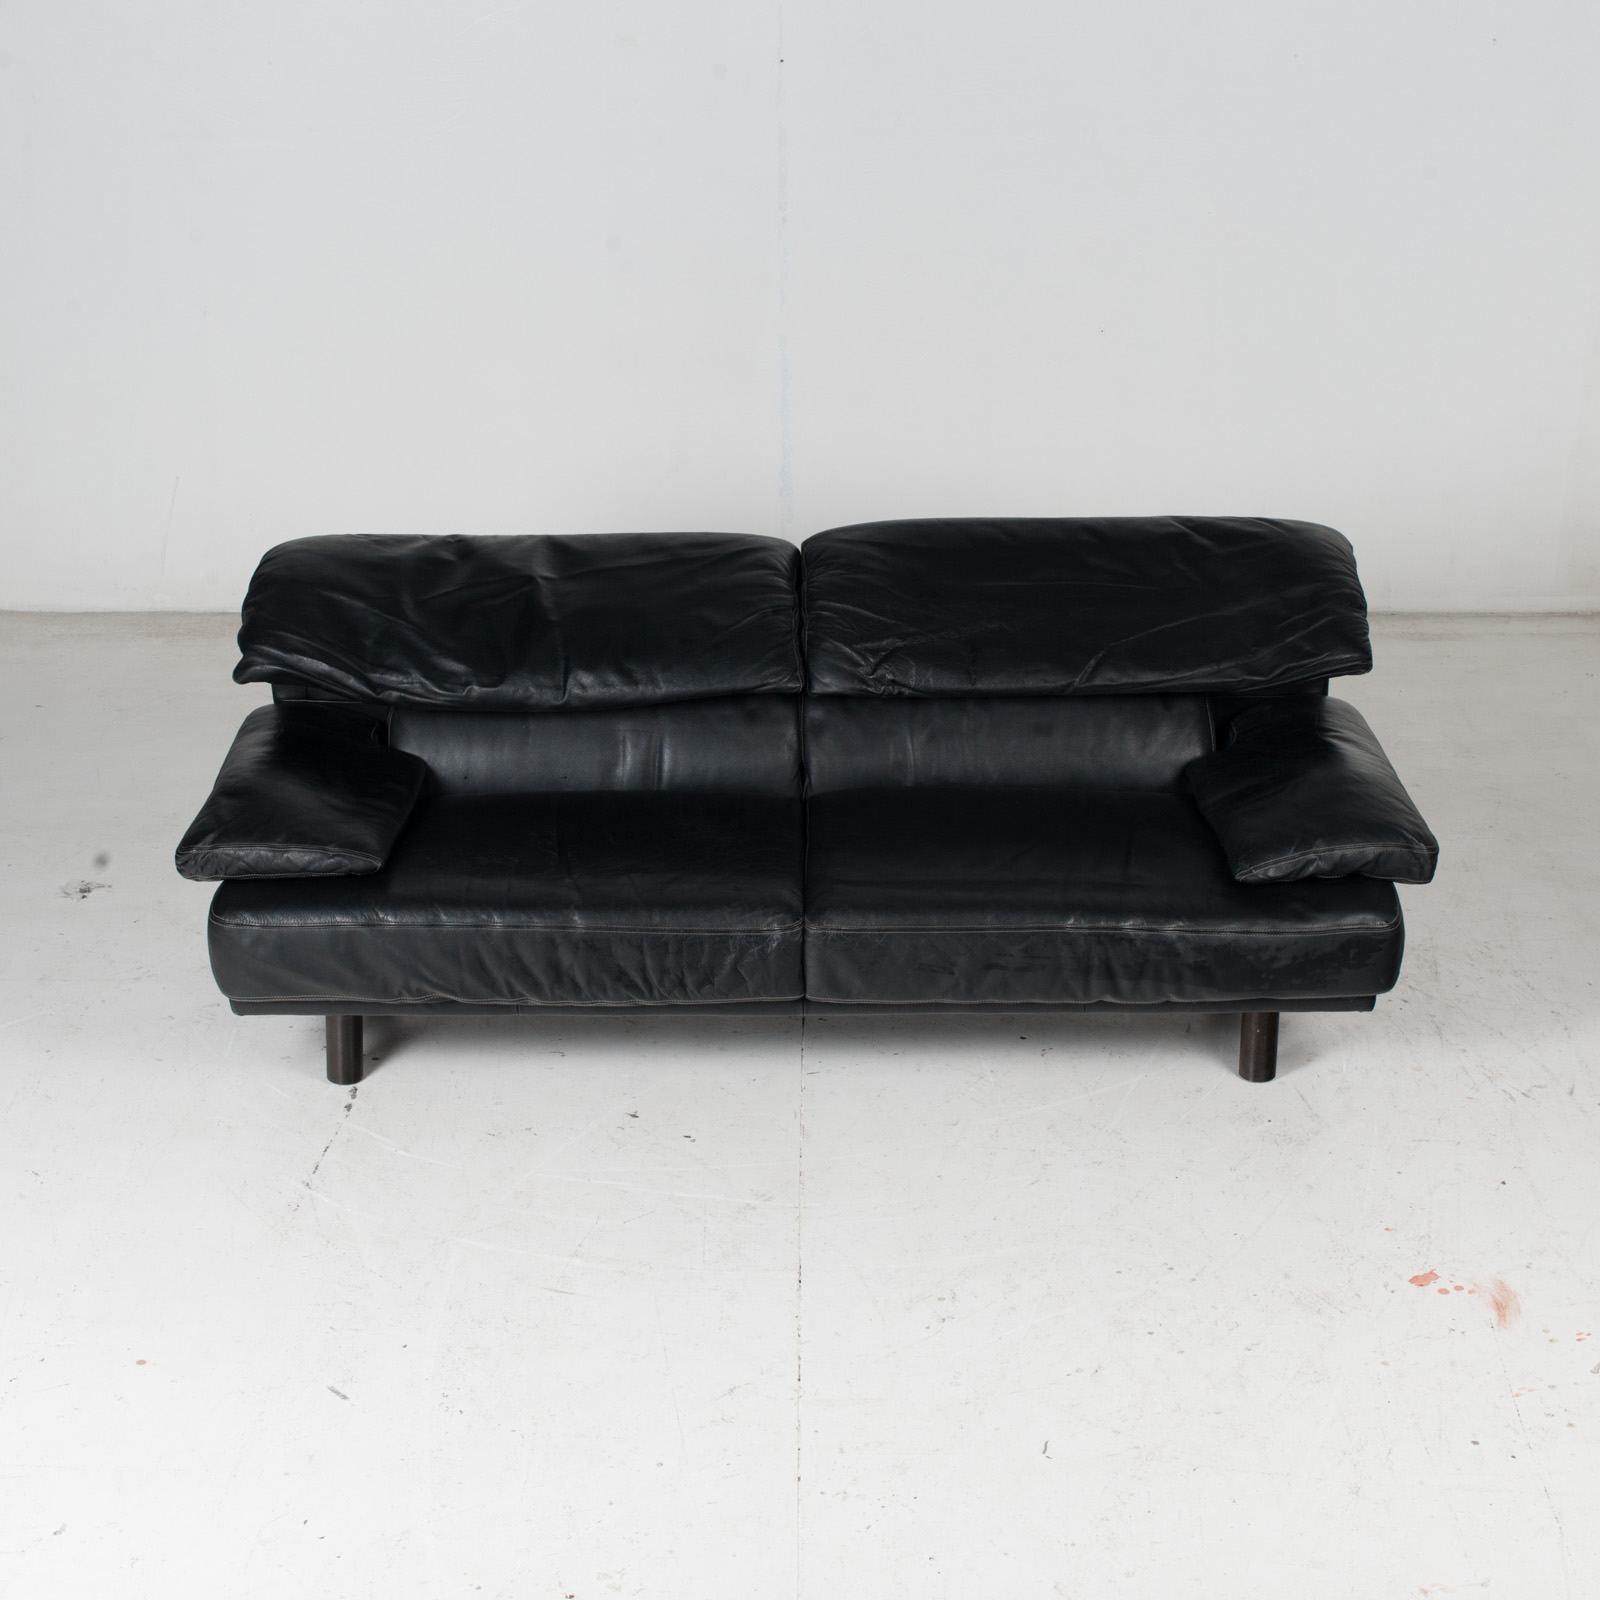 2 Seat Sofa In The Style Of Alanda By Paolo Piva For B&b Italia In Black Leather, 1980s, Italy It 3